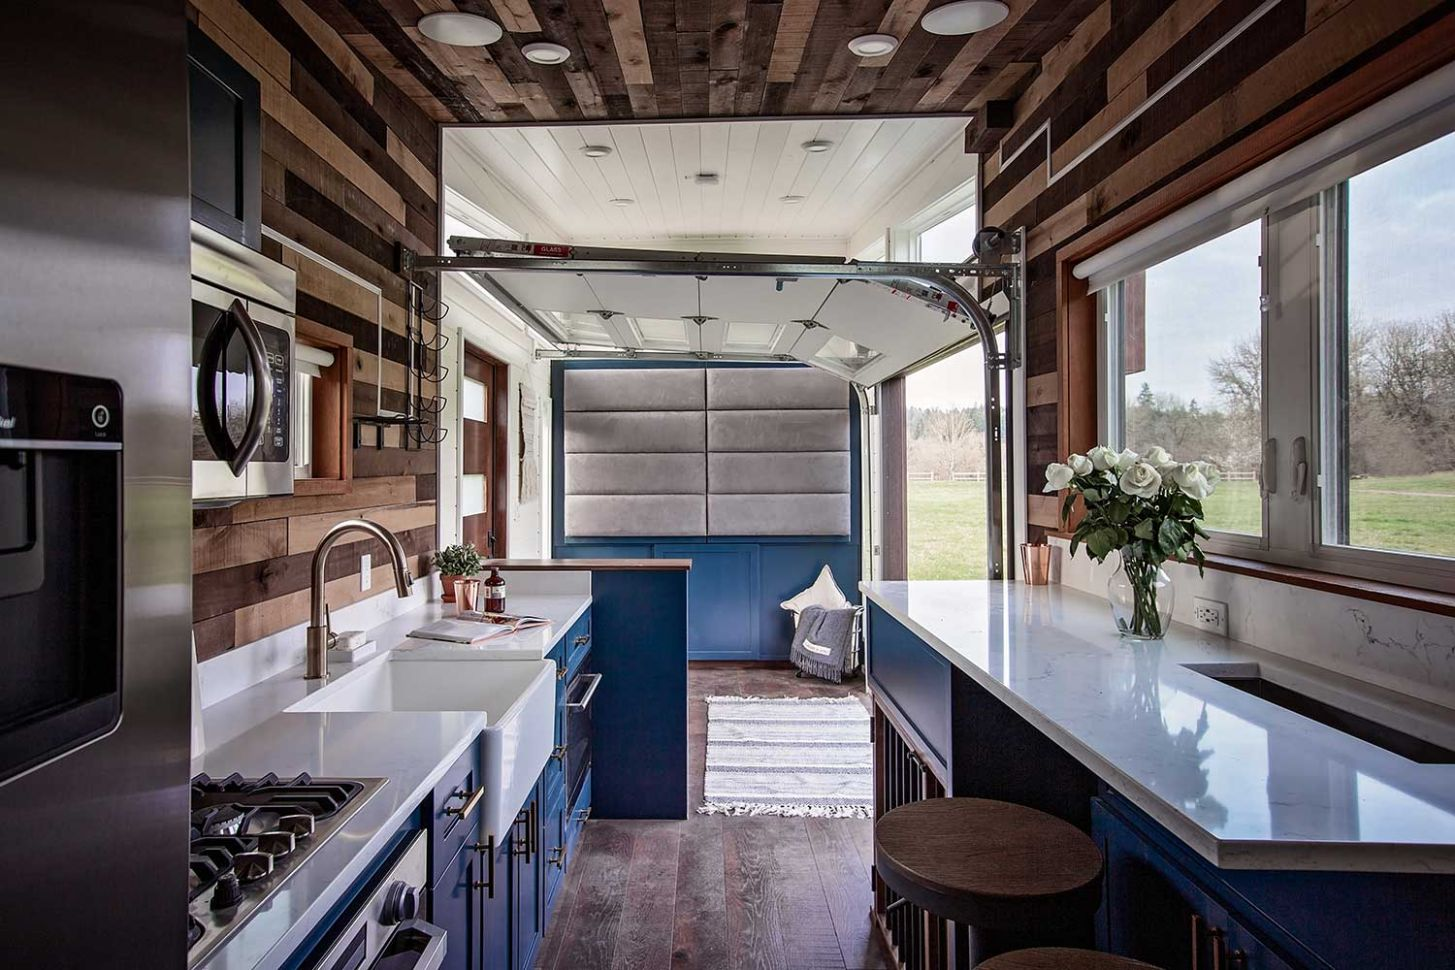 Tiny House Appliances: Which Work Best?   Tiny Heirloom